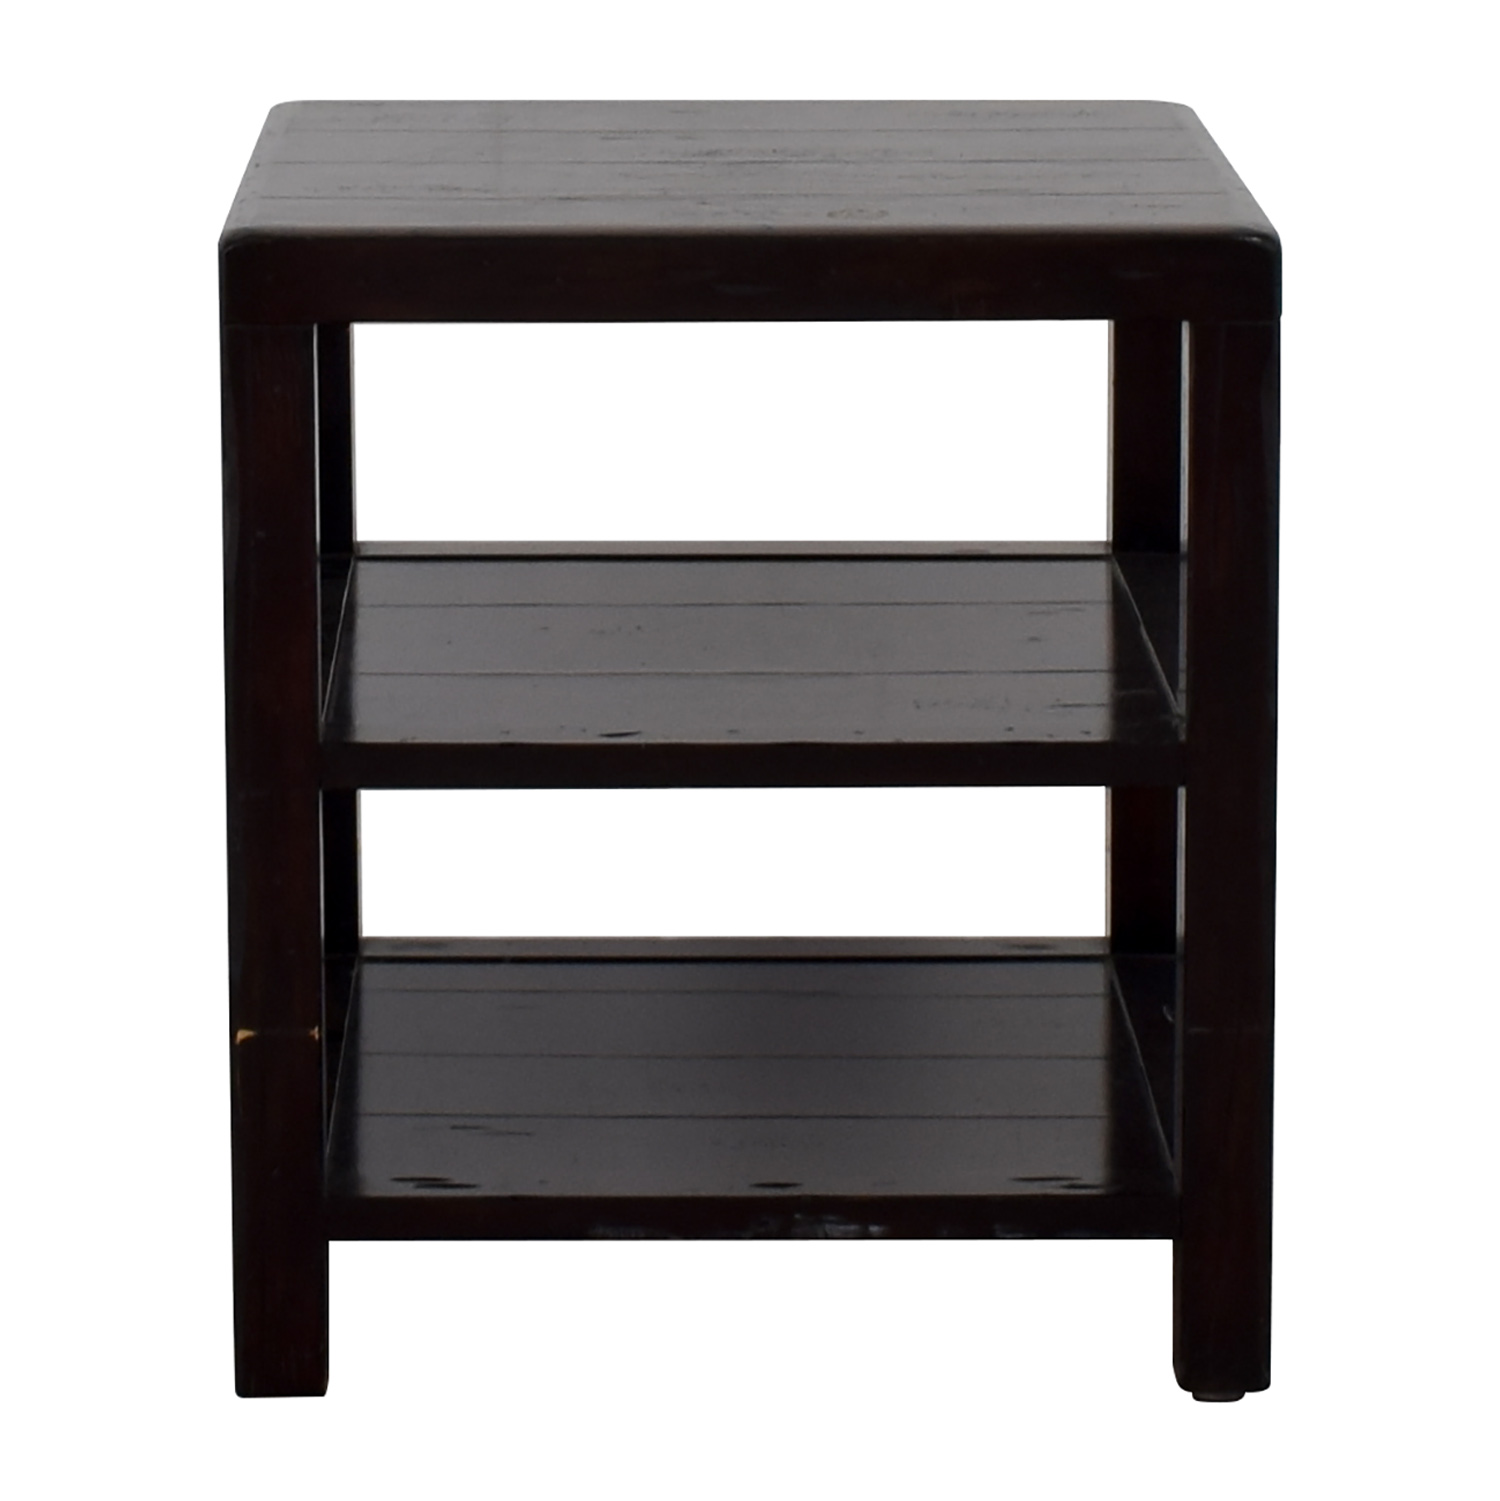 Crate & Barrel Crate & Barrel Brown End Table used